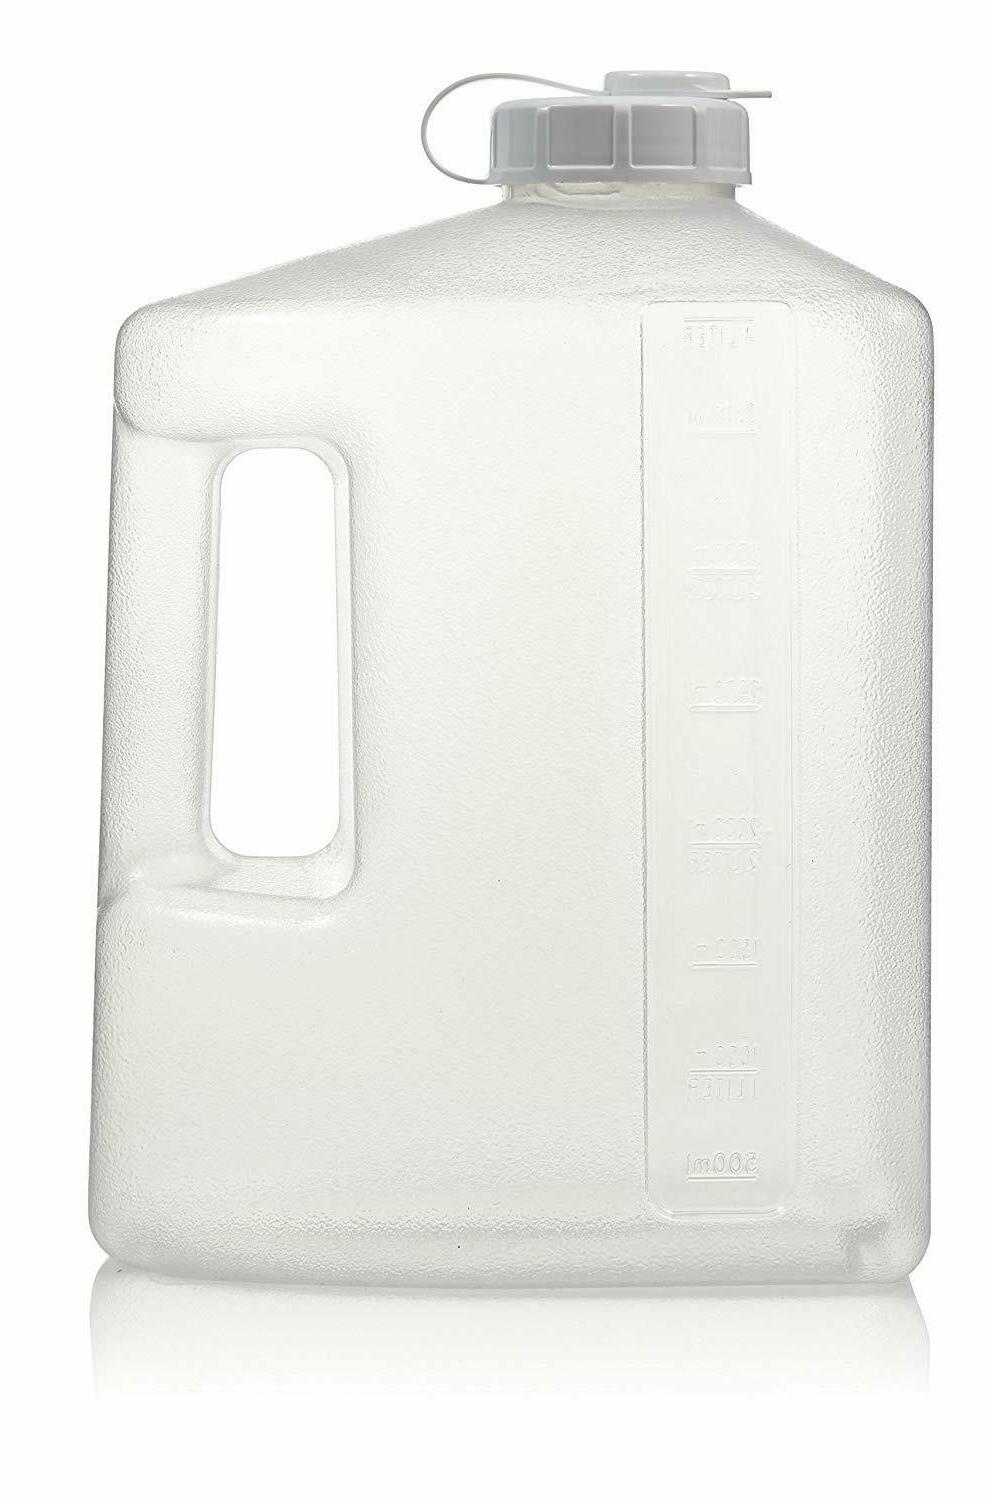 arrow home products 15405 1 gallon refrigerator